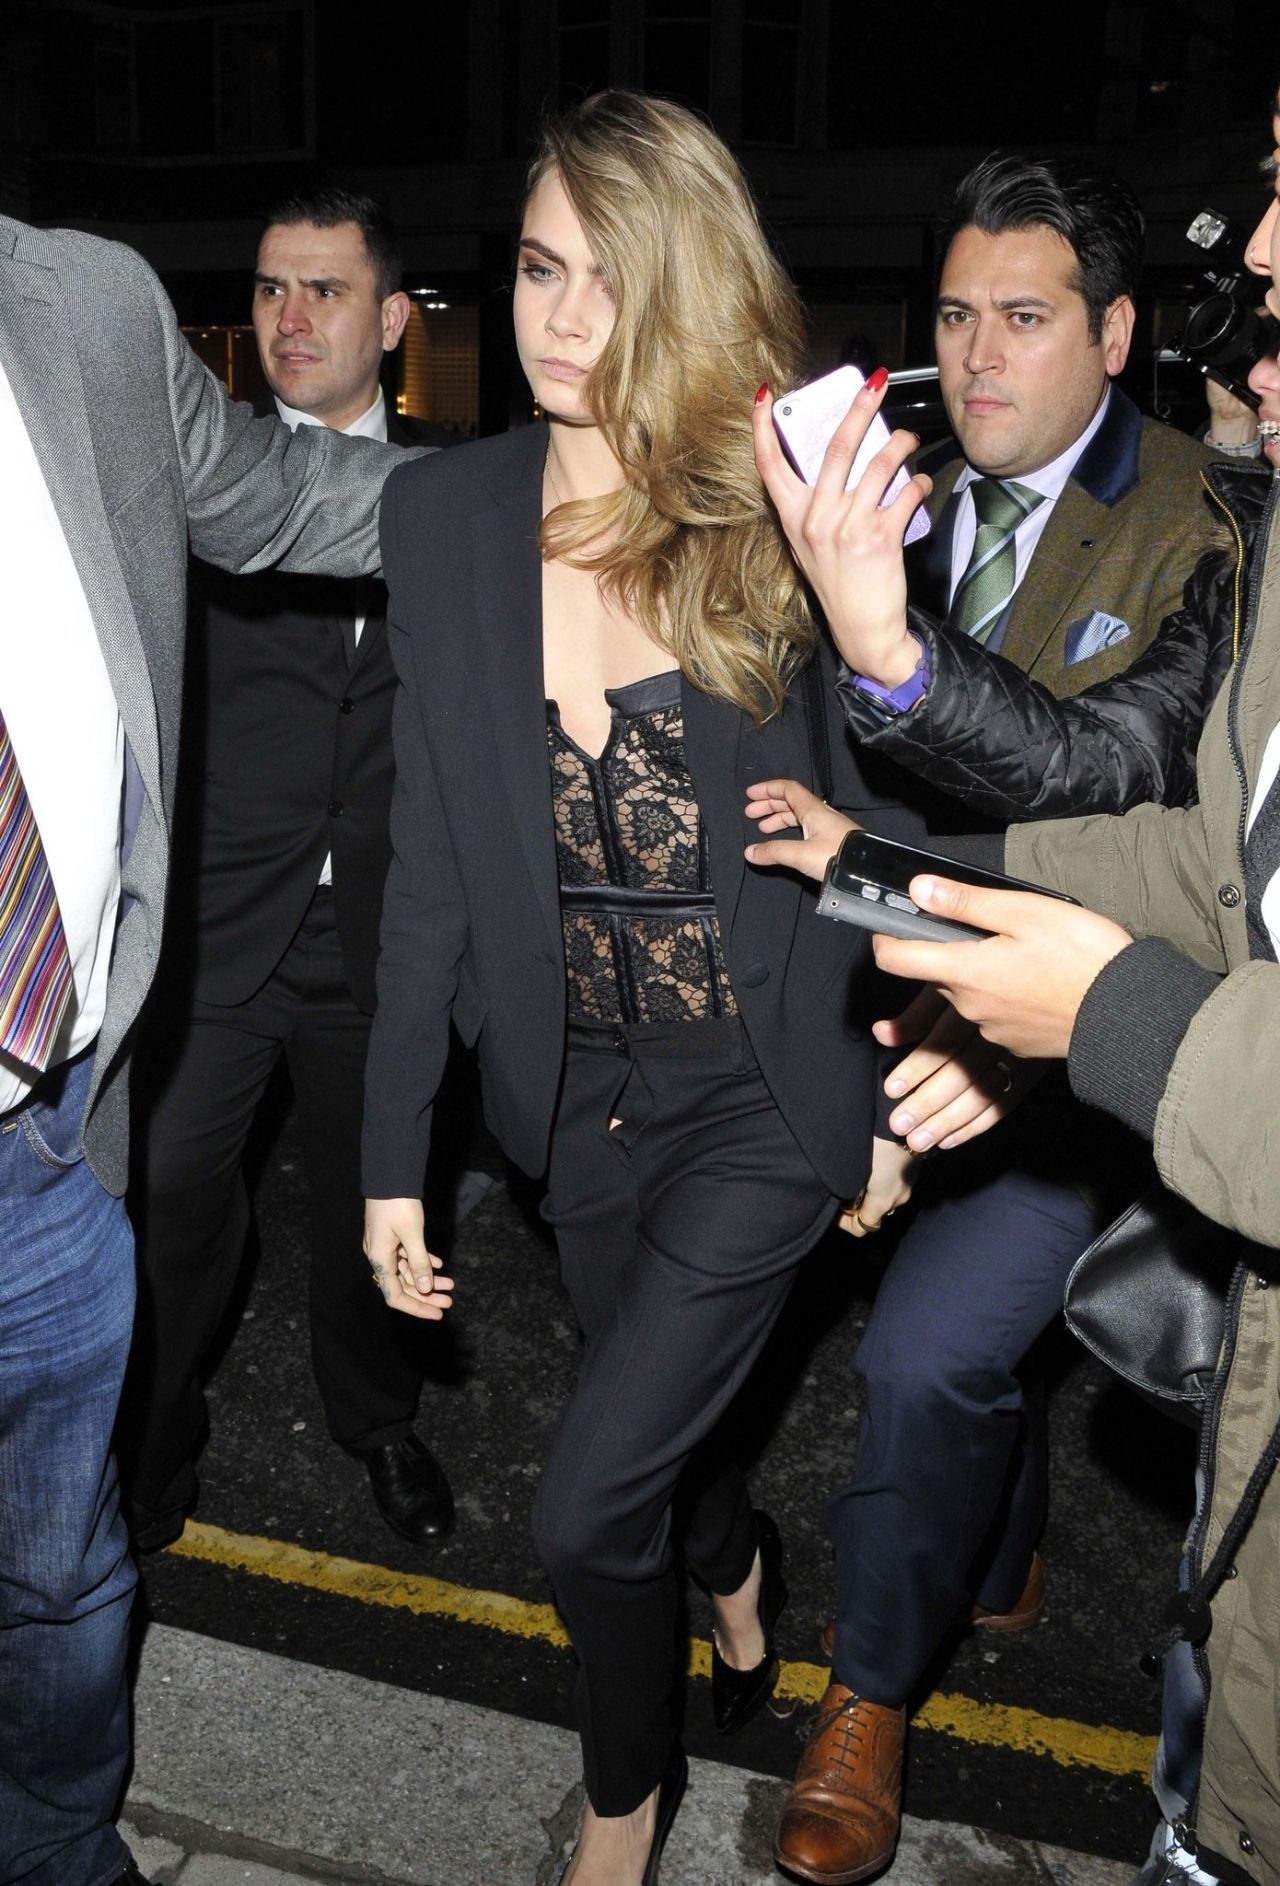 Cara Delevingne Leaving